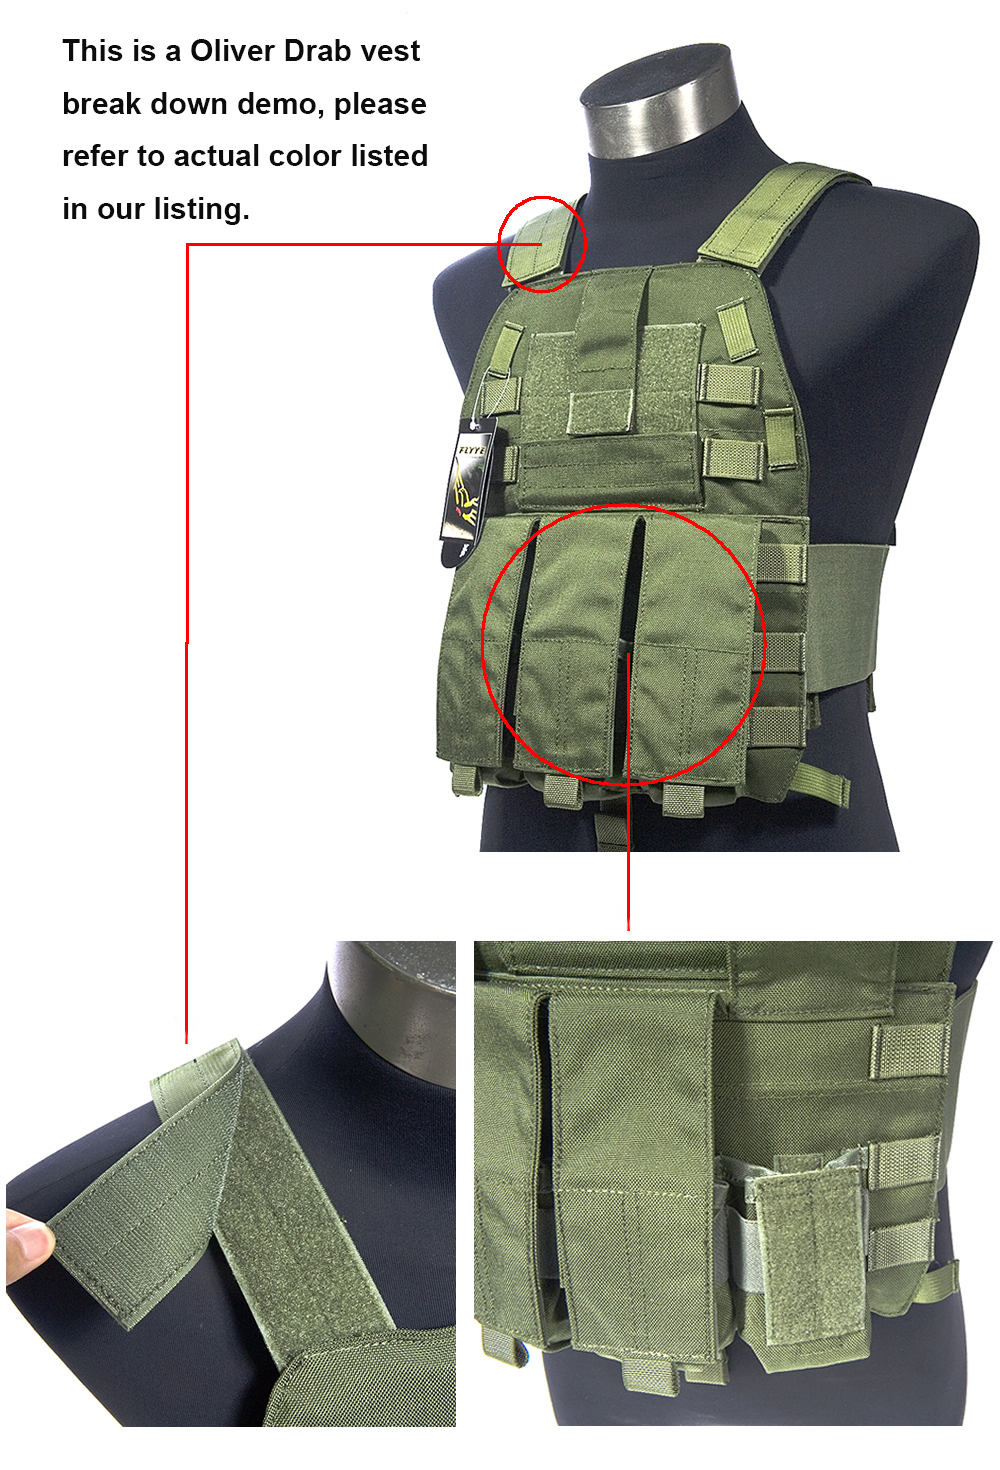 MILITECH Mil Spec Military LT6094K Oliver Drab OD Plate Carrier Combat Molle Tactical Vest Army Military Combat Vests Carrier  цена и фото